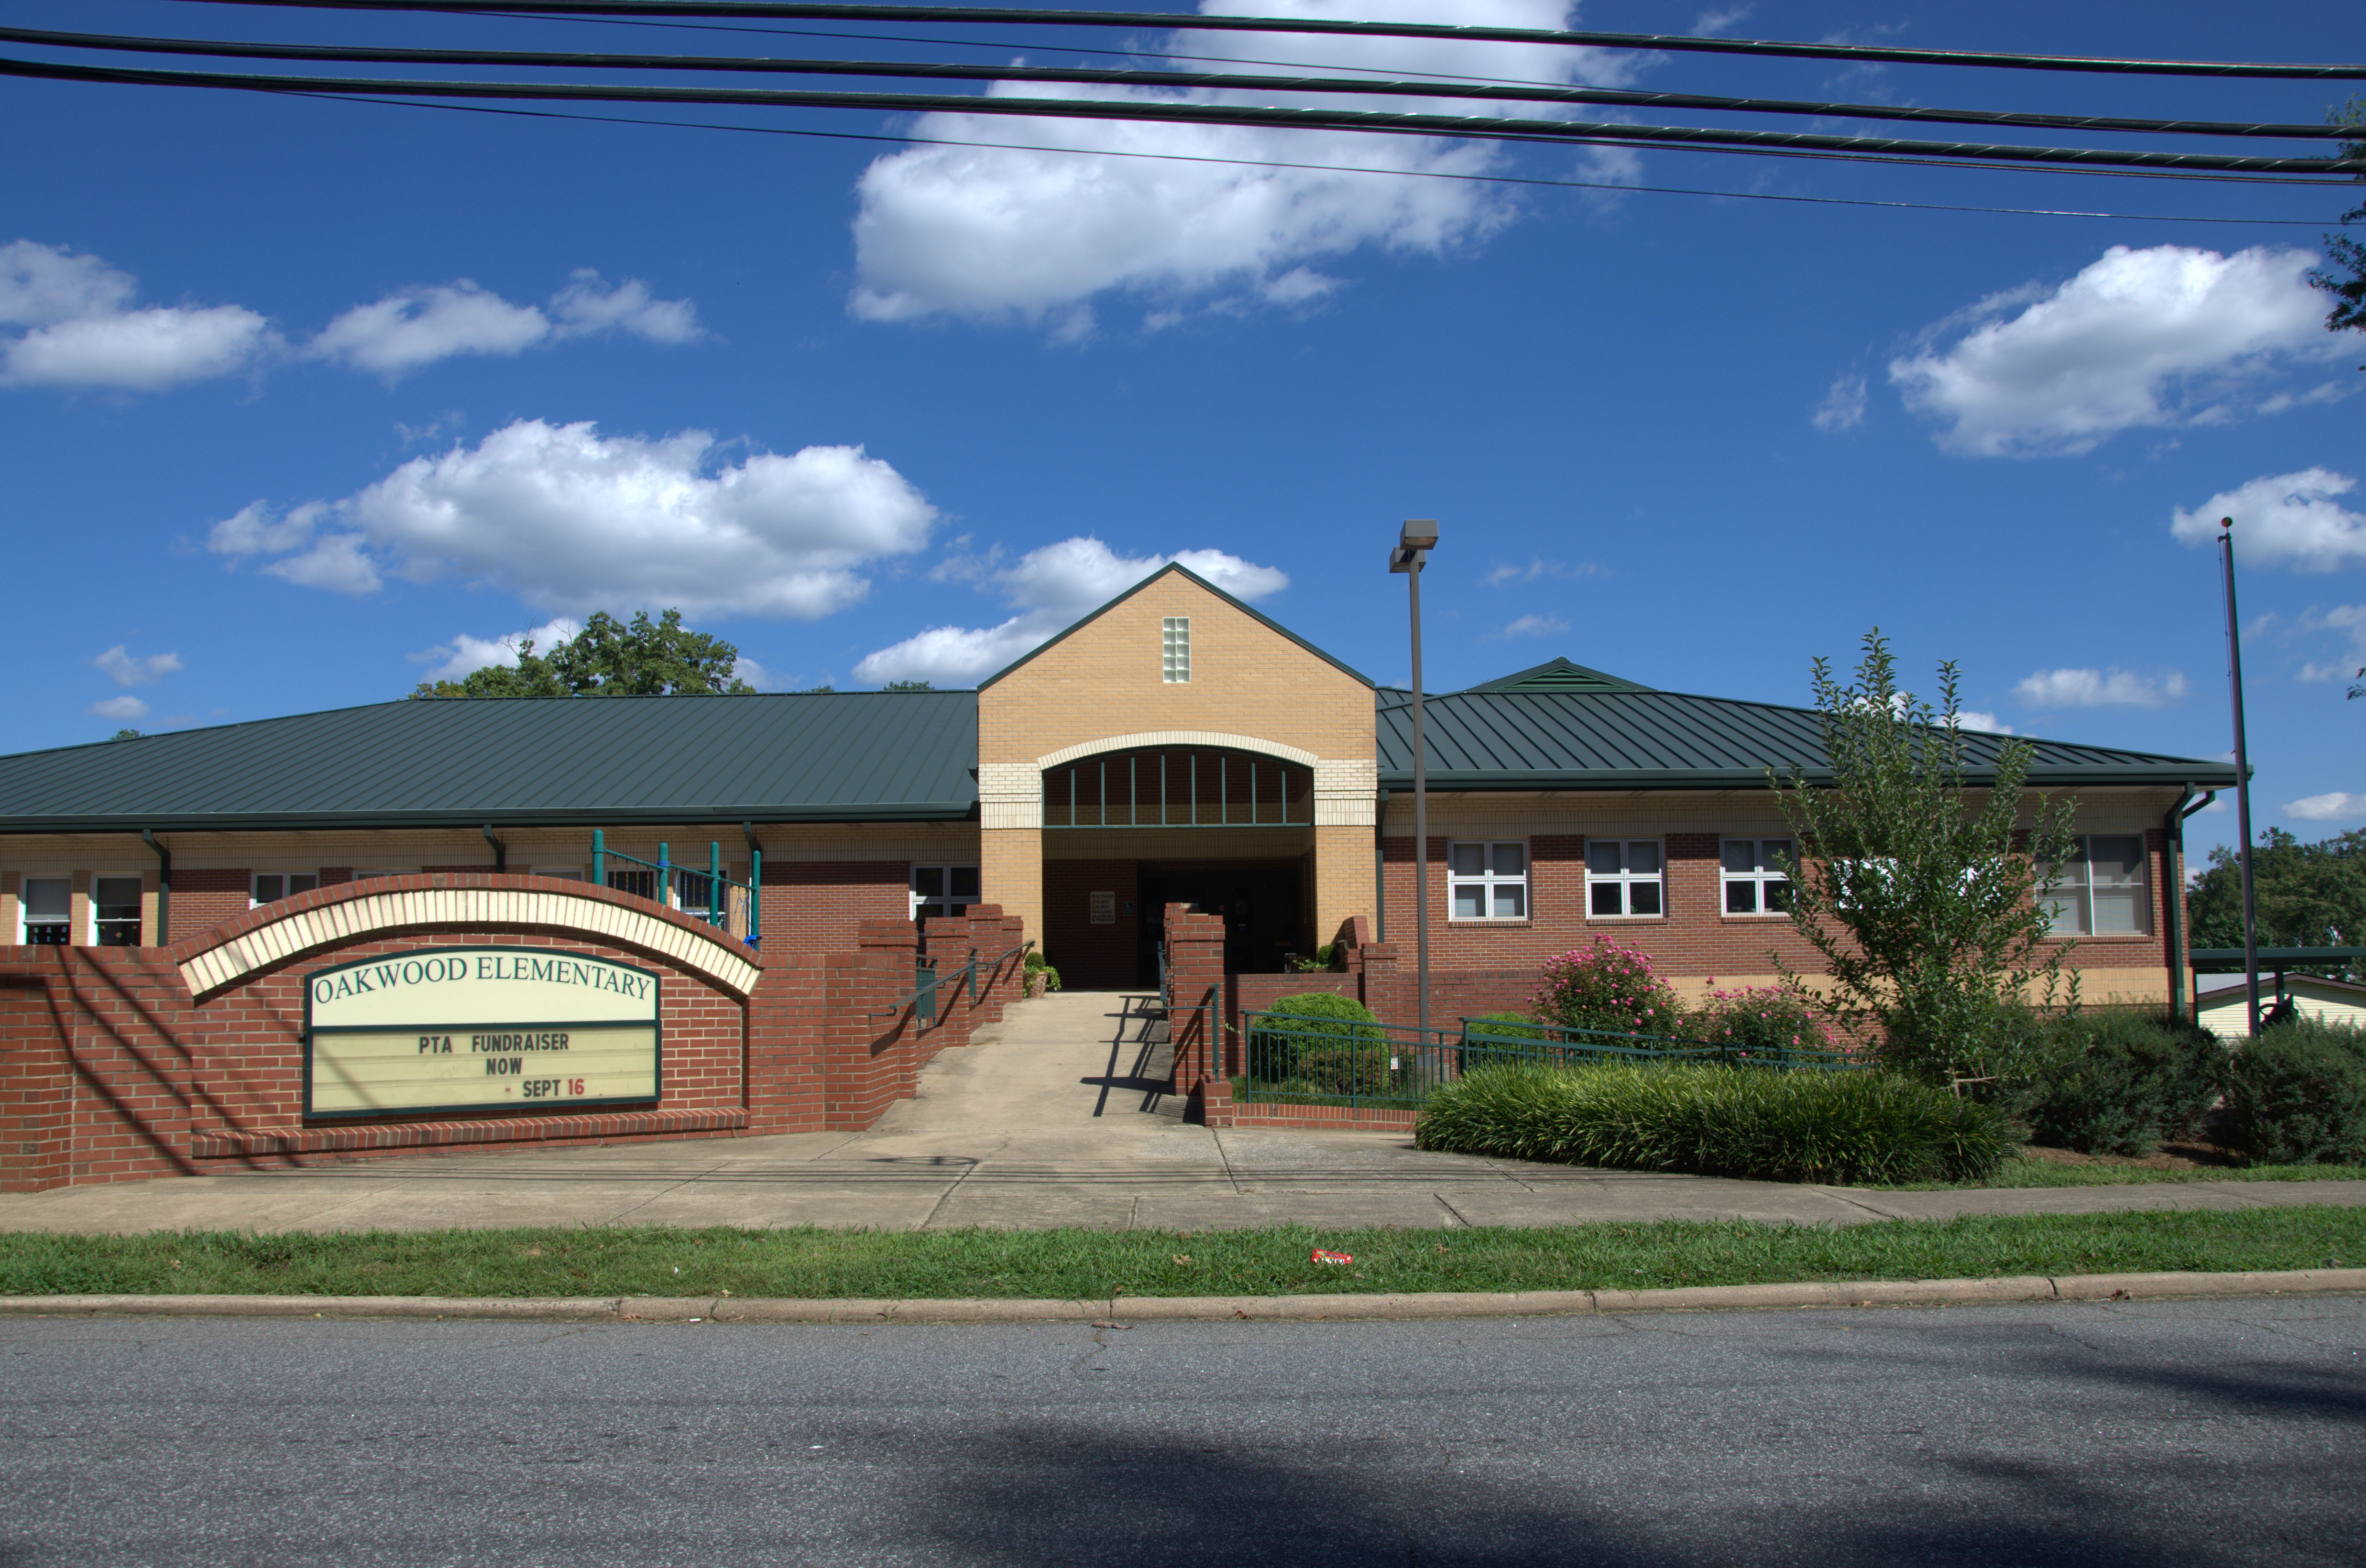 File:Oakwood Elementary School Hickory North Carolina